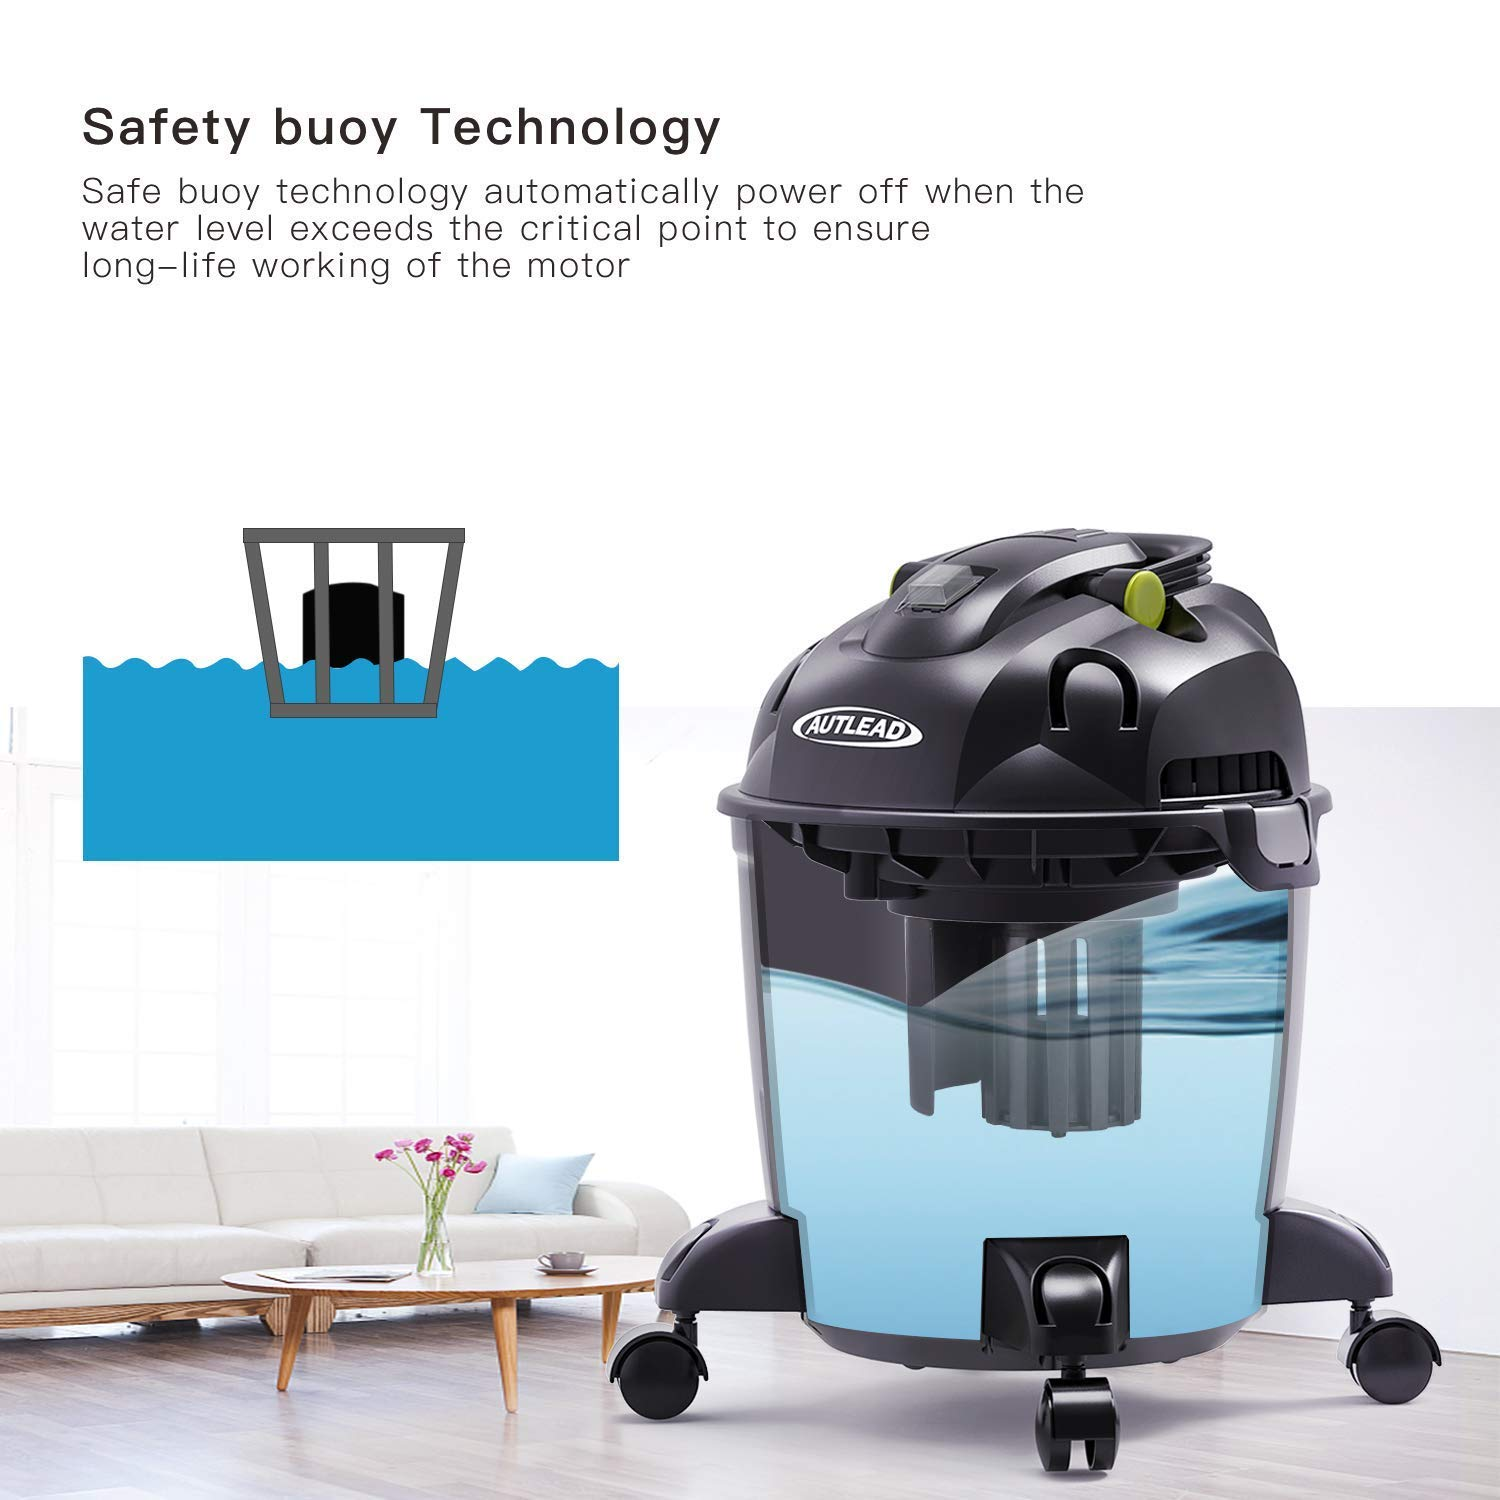 AUTLEAD Wet Dry Vacuum WDS01A 5 Gallon Pure Copper Motor 5.5 HP Wet/Dry/Blow 3 in 1 Shop Vac, Stable Round Bucket Design with Pulley System, HEPA Disposable Bag, 3 Brush Included[US Stock] by AUTLEAD (Image #5)